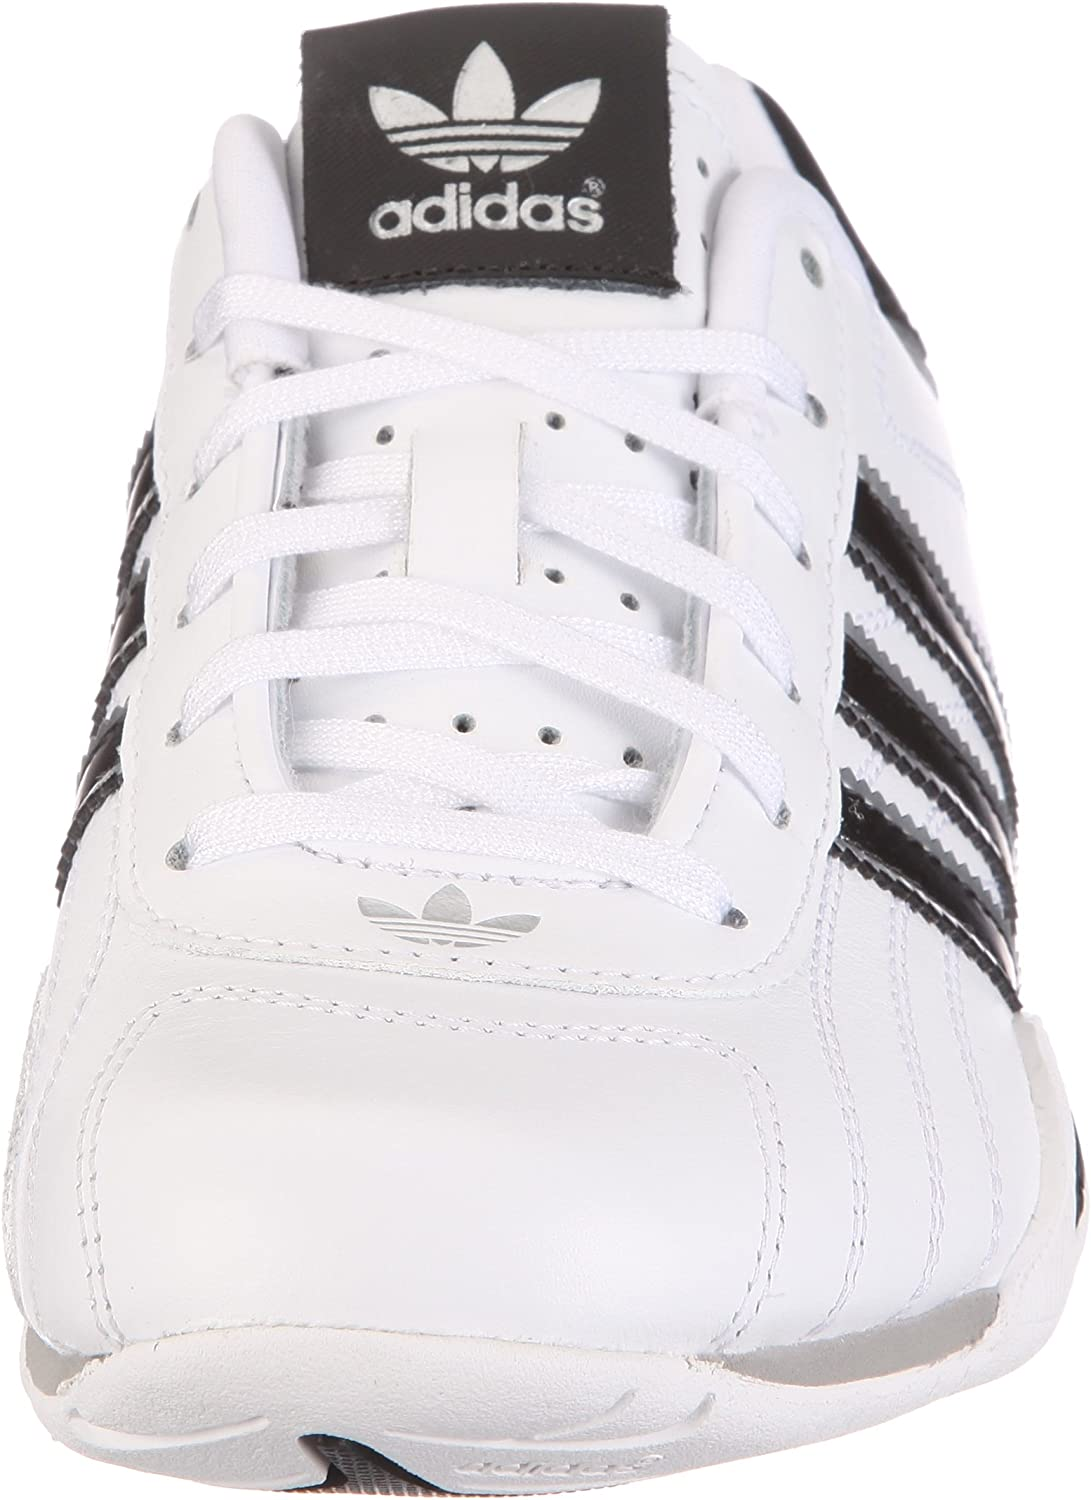 adidas Originals Adi Racer Low, Chaussures lifestyle baskets